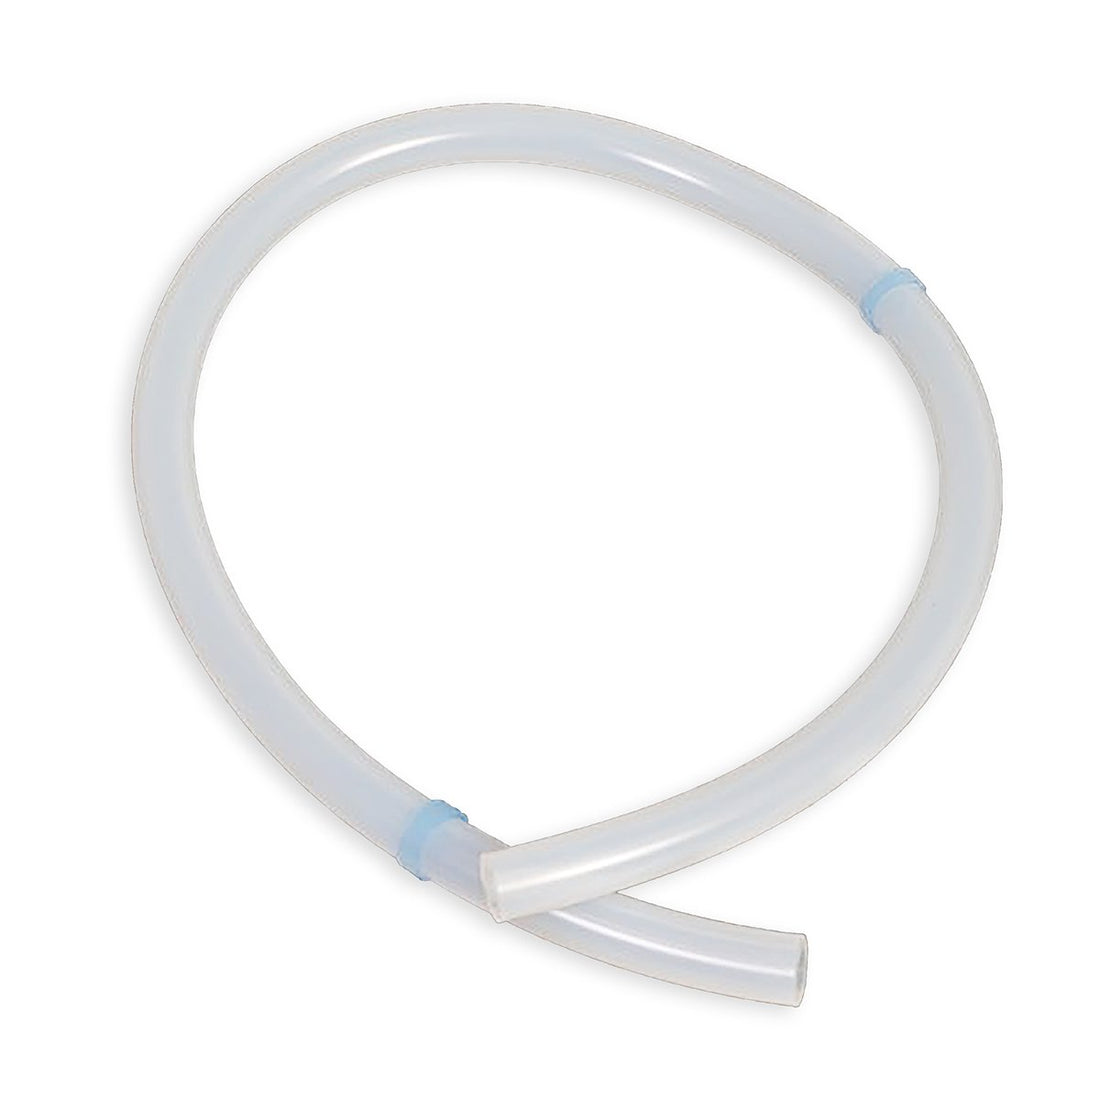 Silicone Tubing with Blue Bands for ISCO 6700 Series Compact Portable Sampler-Each Piece